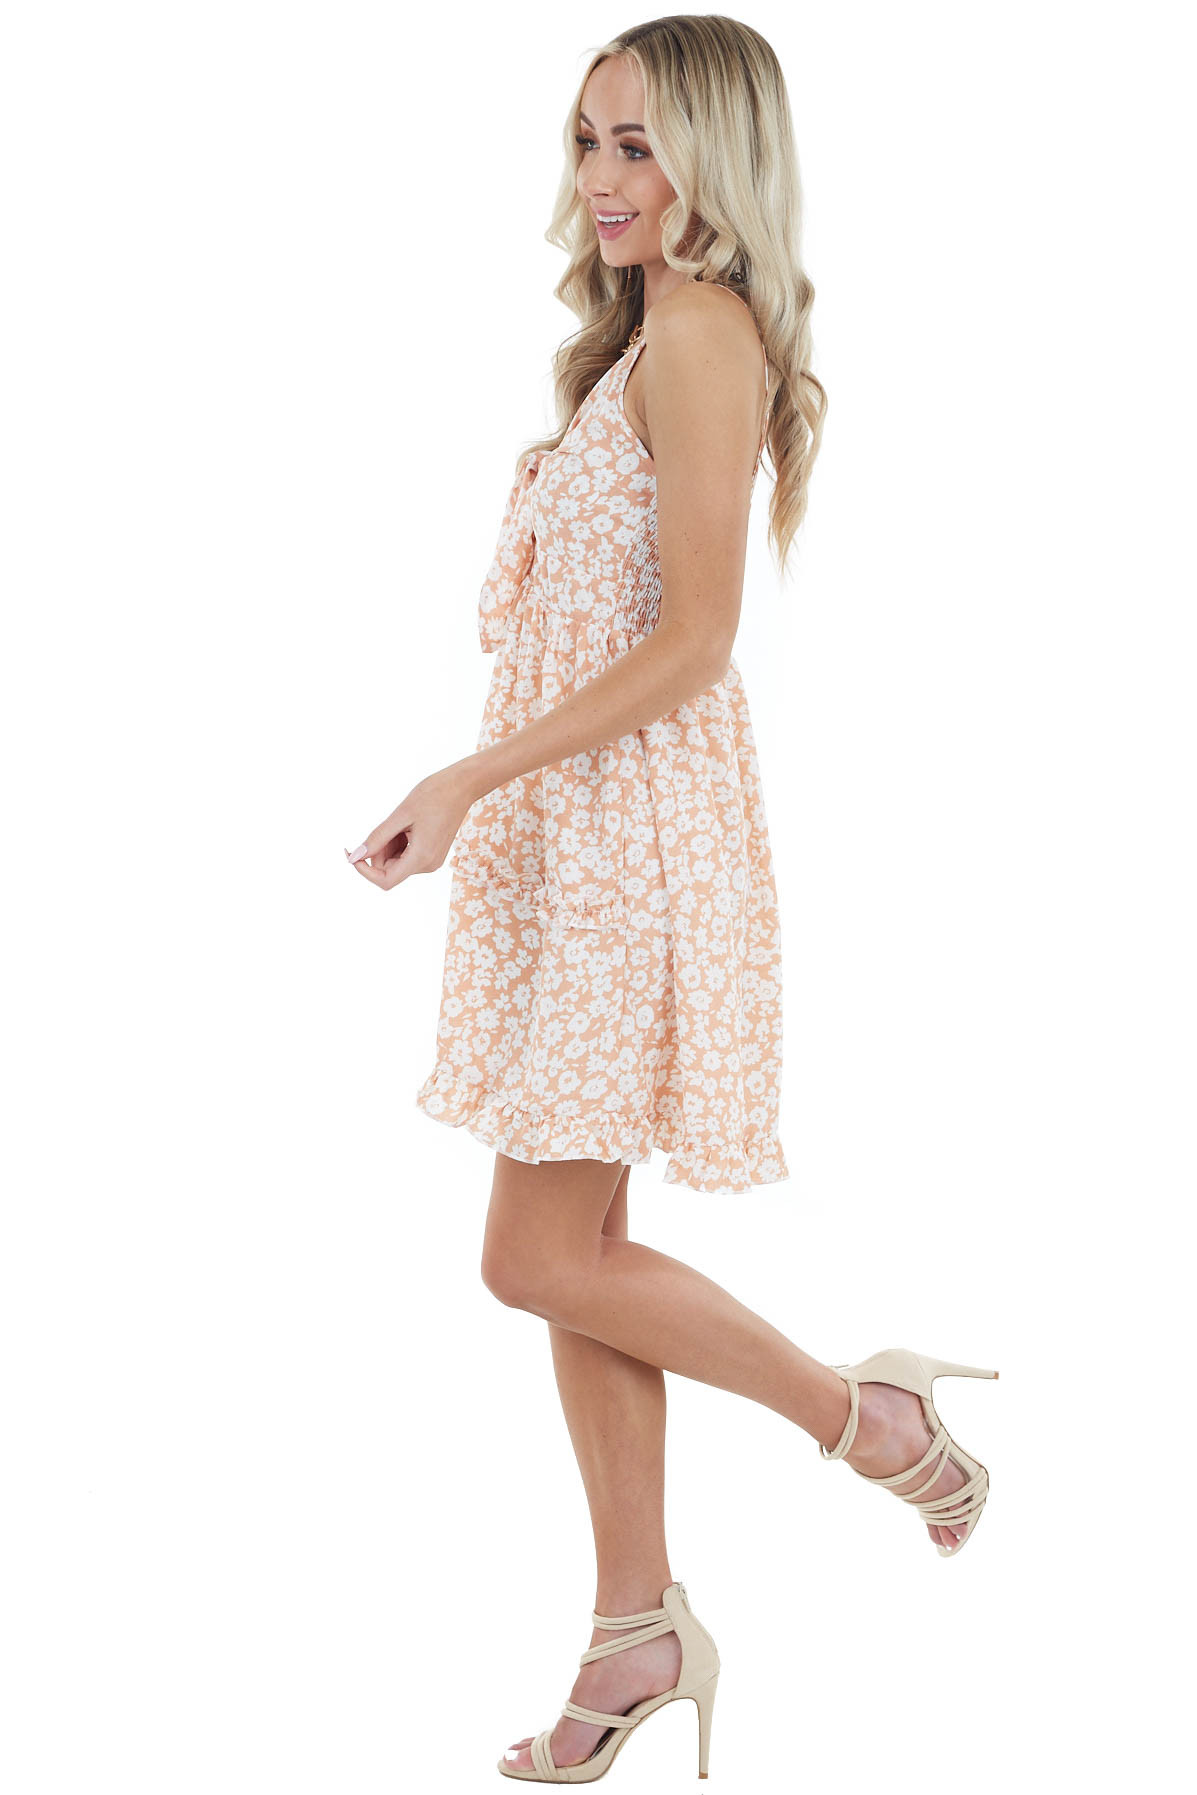 Peach Floral Print Sleeveless Short Dress with Tie Detail